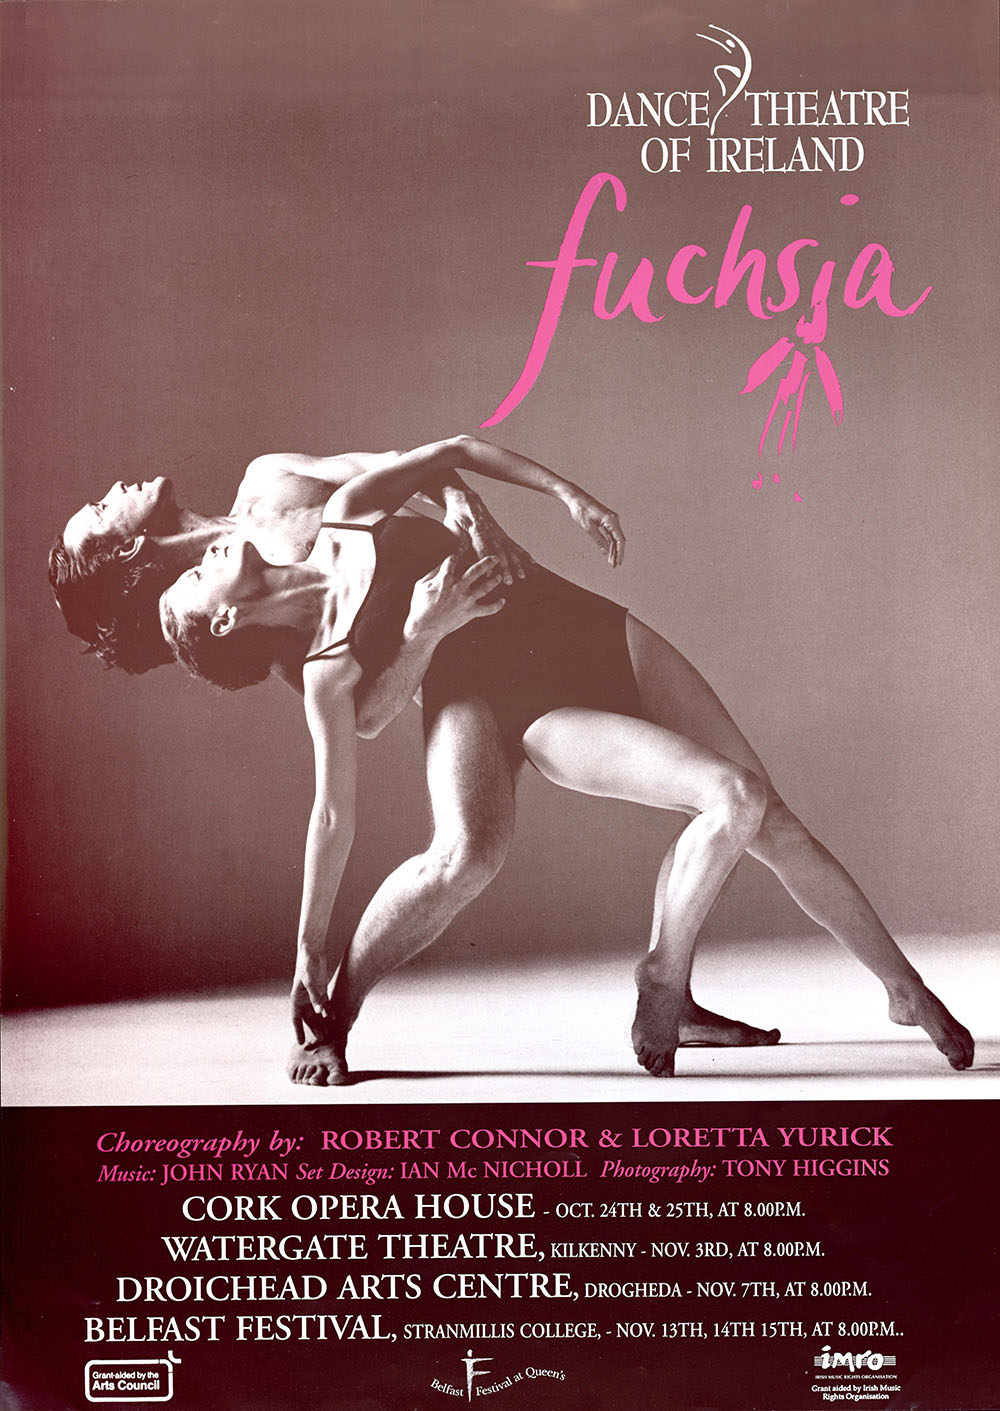 black-and-white poster advertising Fuchsia by Dance Theatre of Ireland, featuring artwork of a male and female dancer, bare-feet, mid-dance